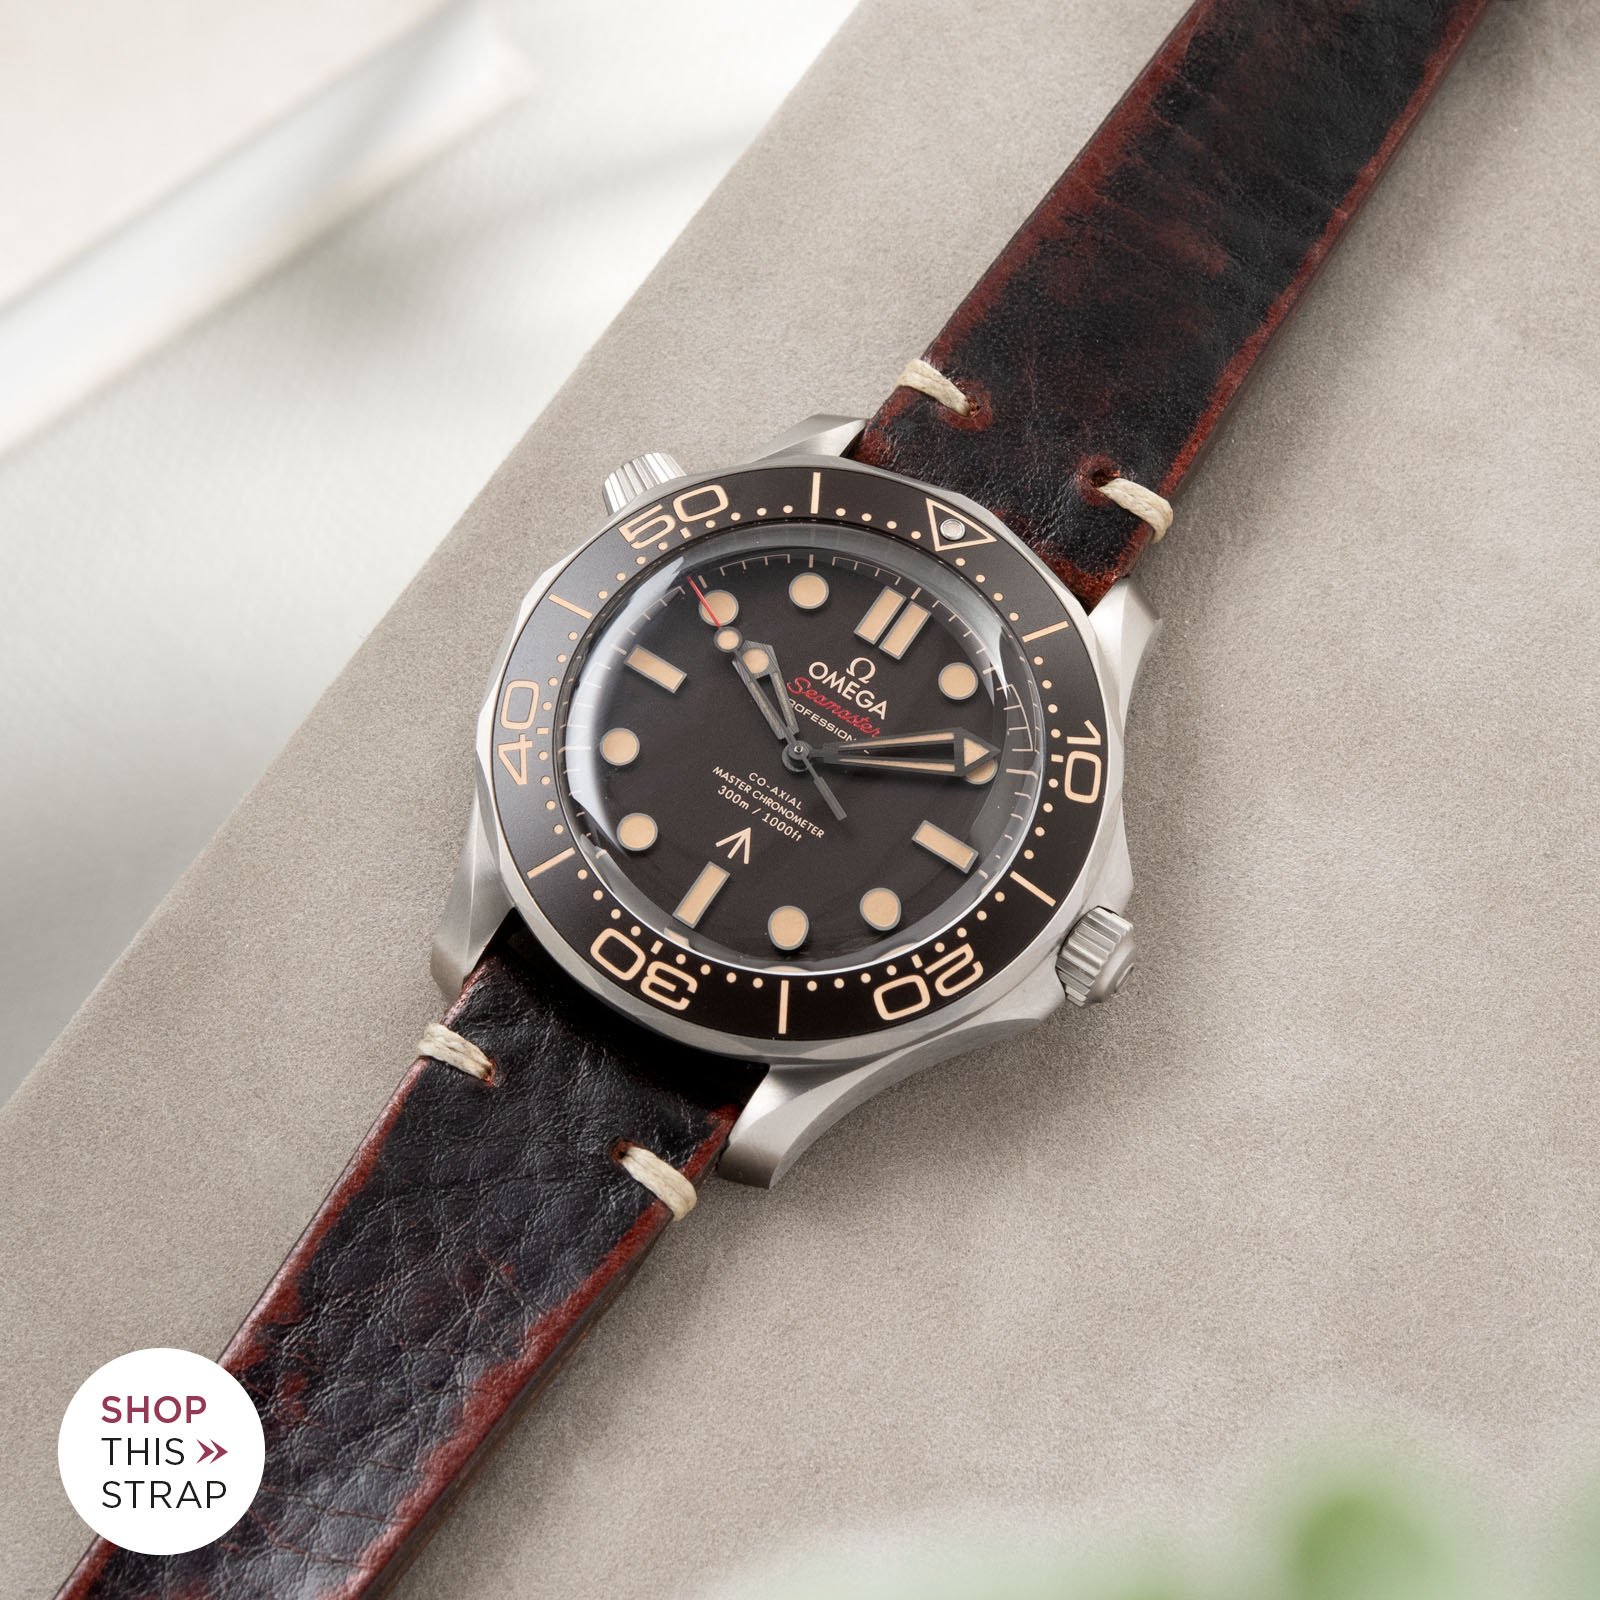 Bulang and Sons_Strapguide_Omega Seamaster_DIABLO BLACK LEATHER WATCH STRAP_004